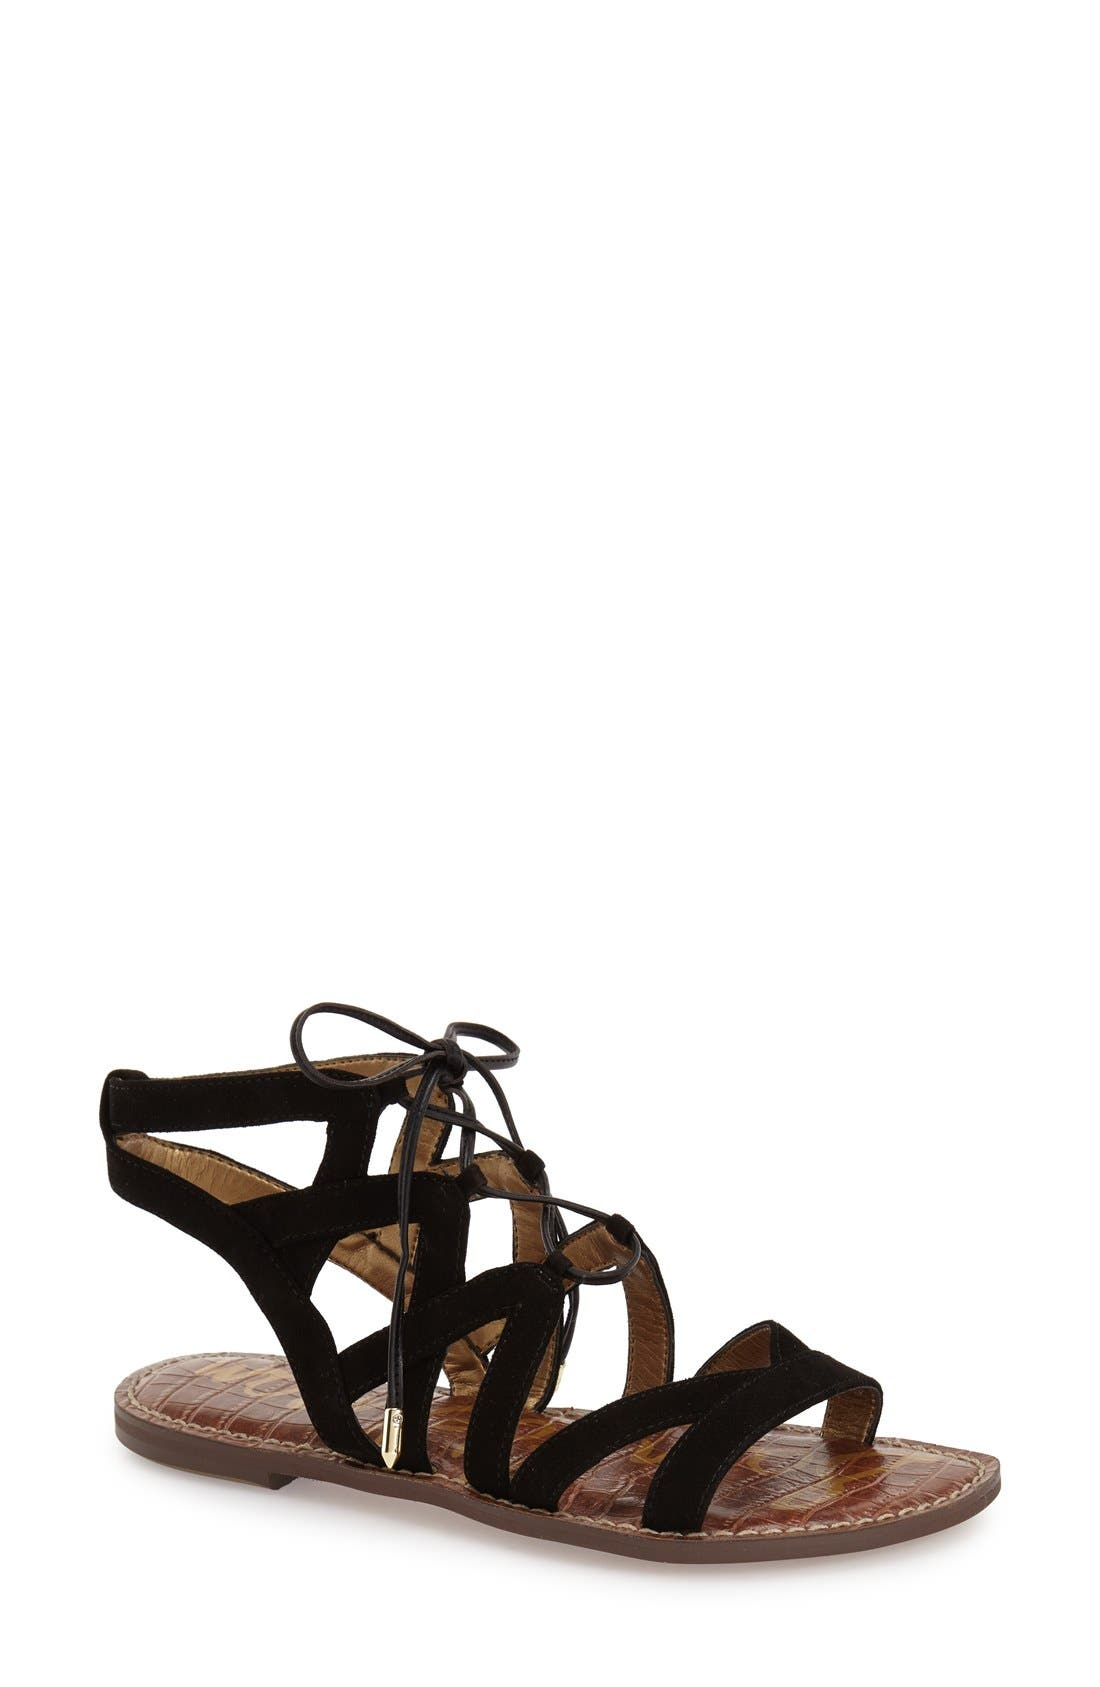 Main Image - Sam Edelman Gemma Lace-Up Sandal (Women)